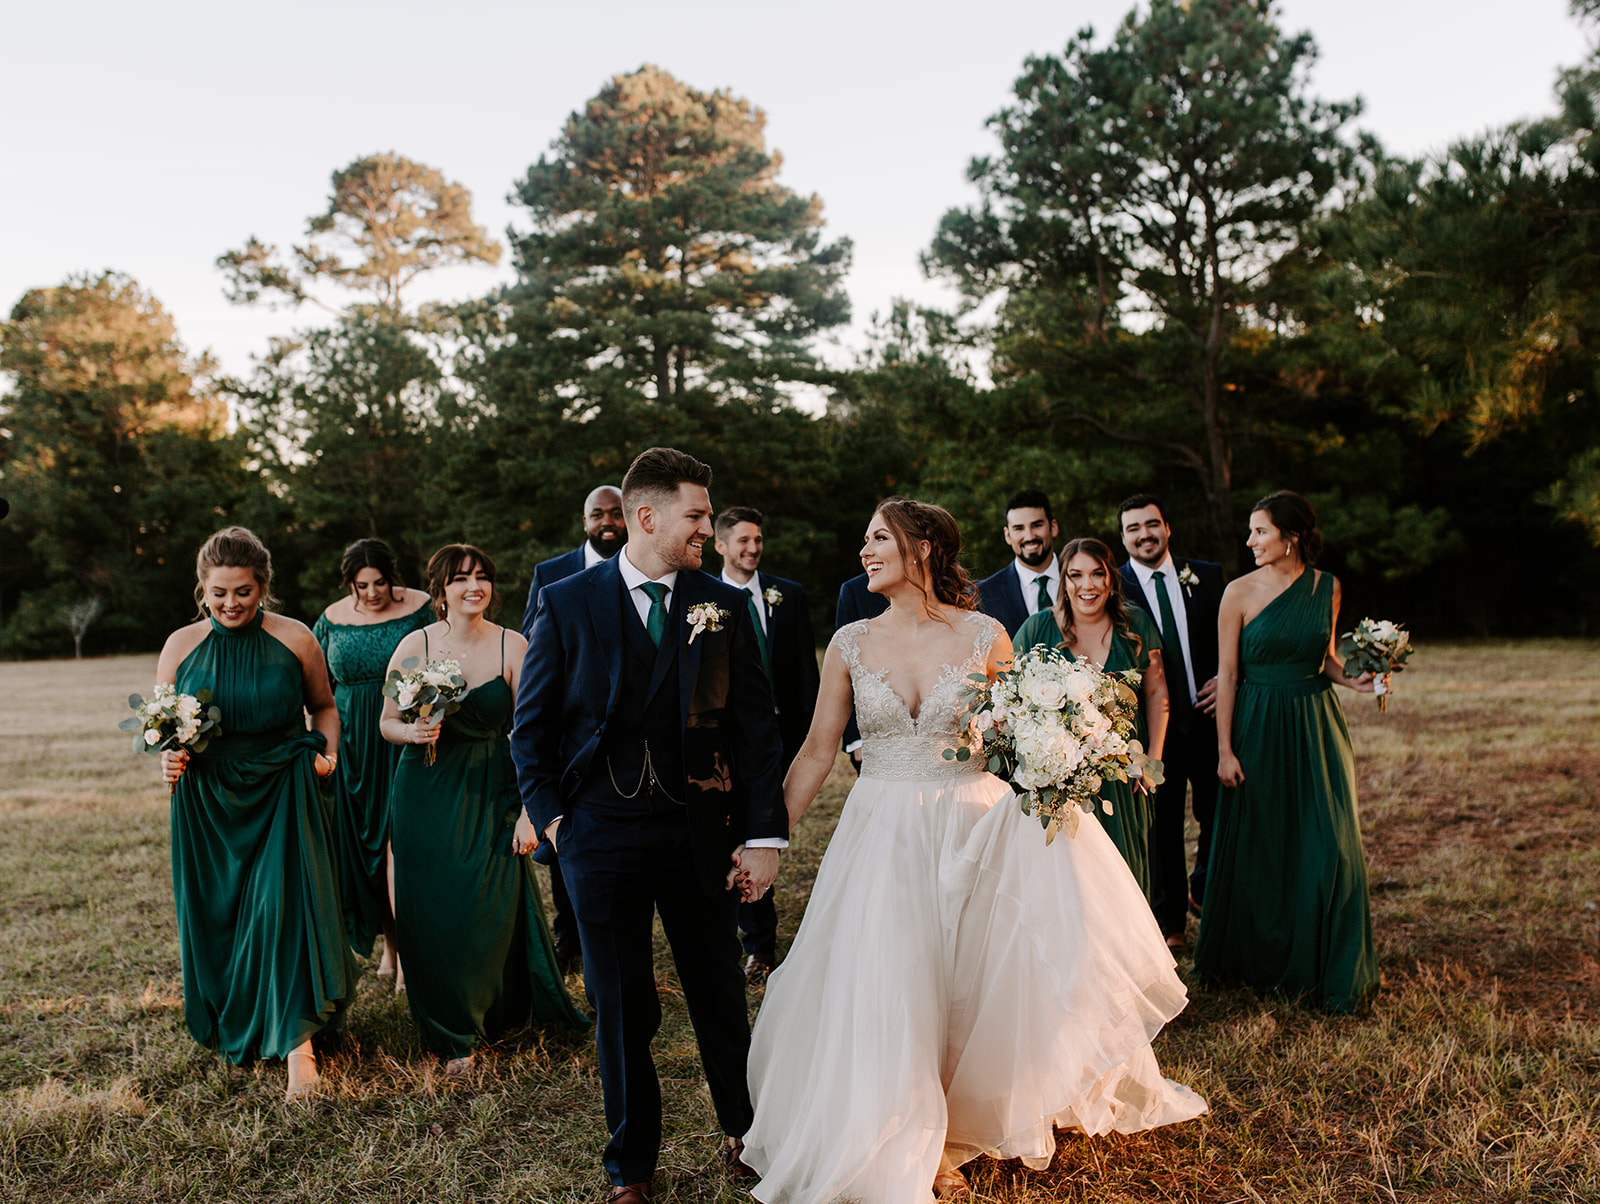 A wedding couple is standing on a meadow in front of their bridesmaids and groomsmen.